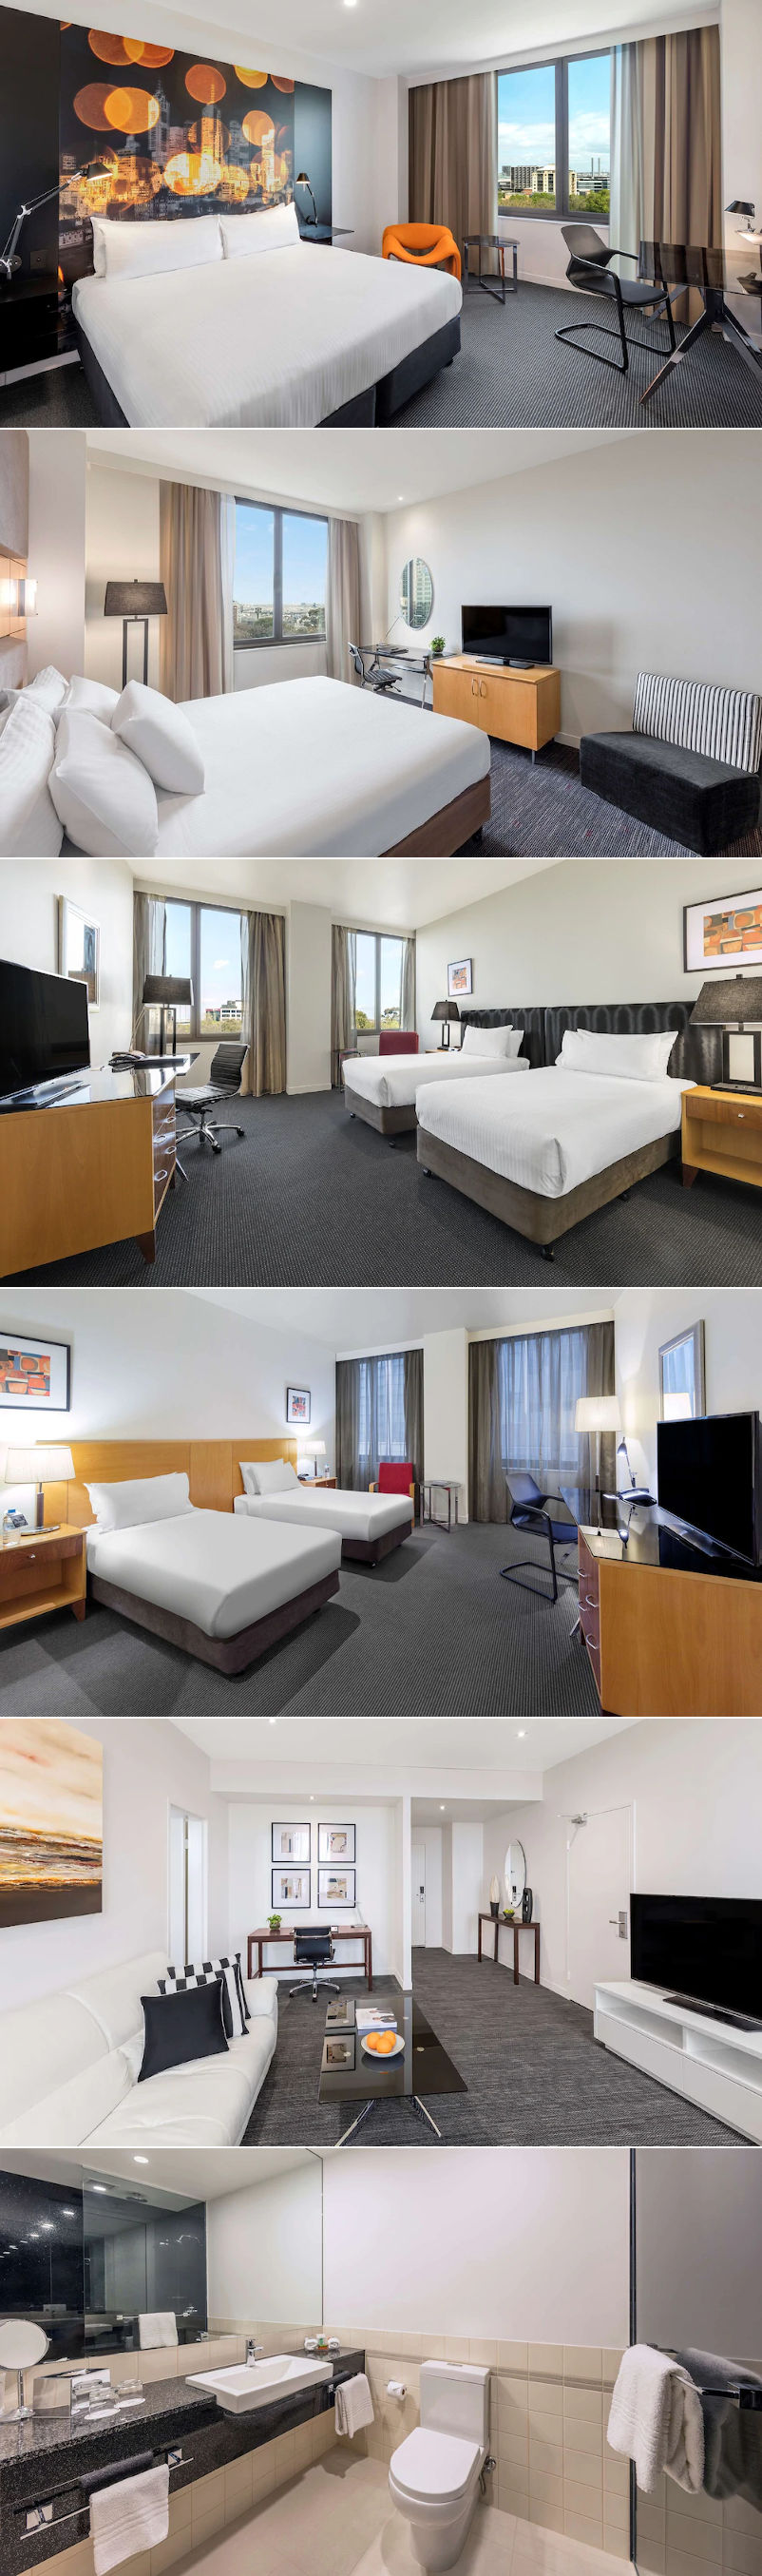 Radisson on Flagstaff Gardens - Rooms